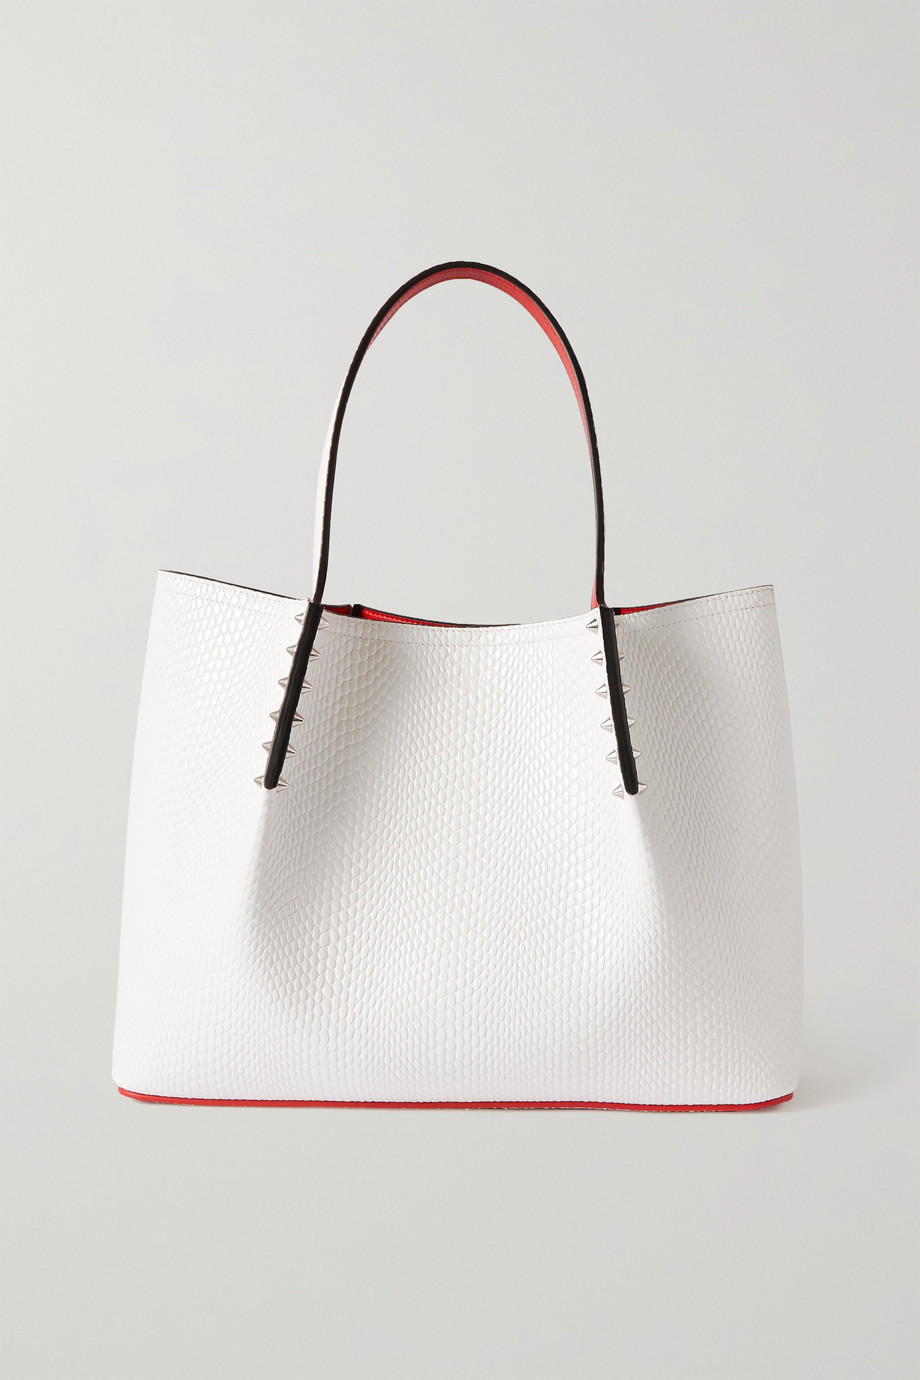 CHRISTIAN LOUBOUTIN Cabarock spiked lizard-effect leather tote